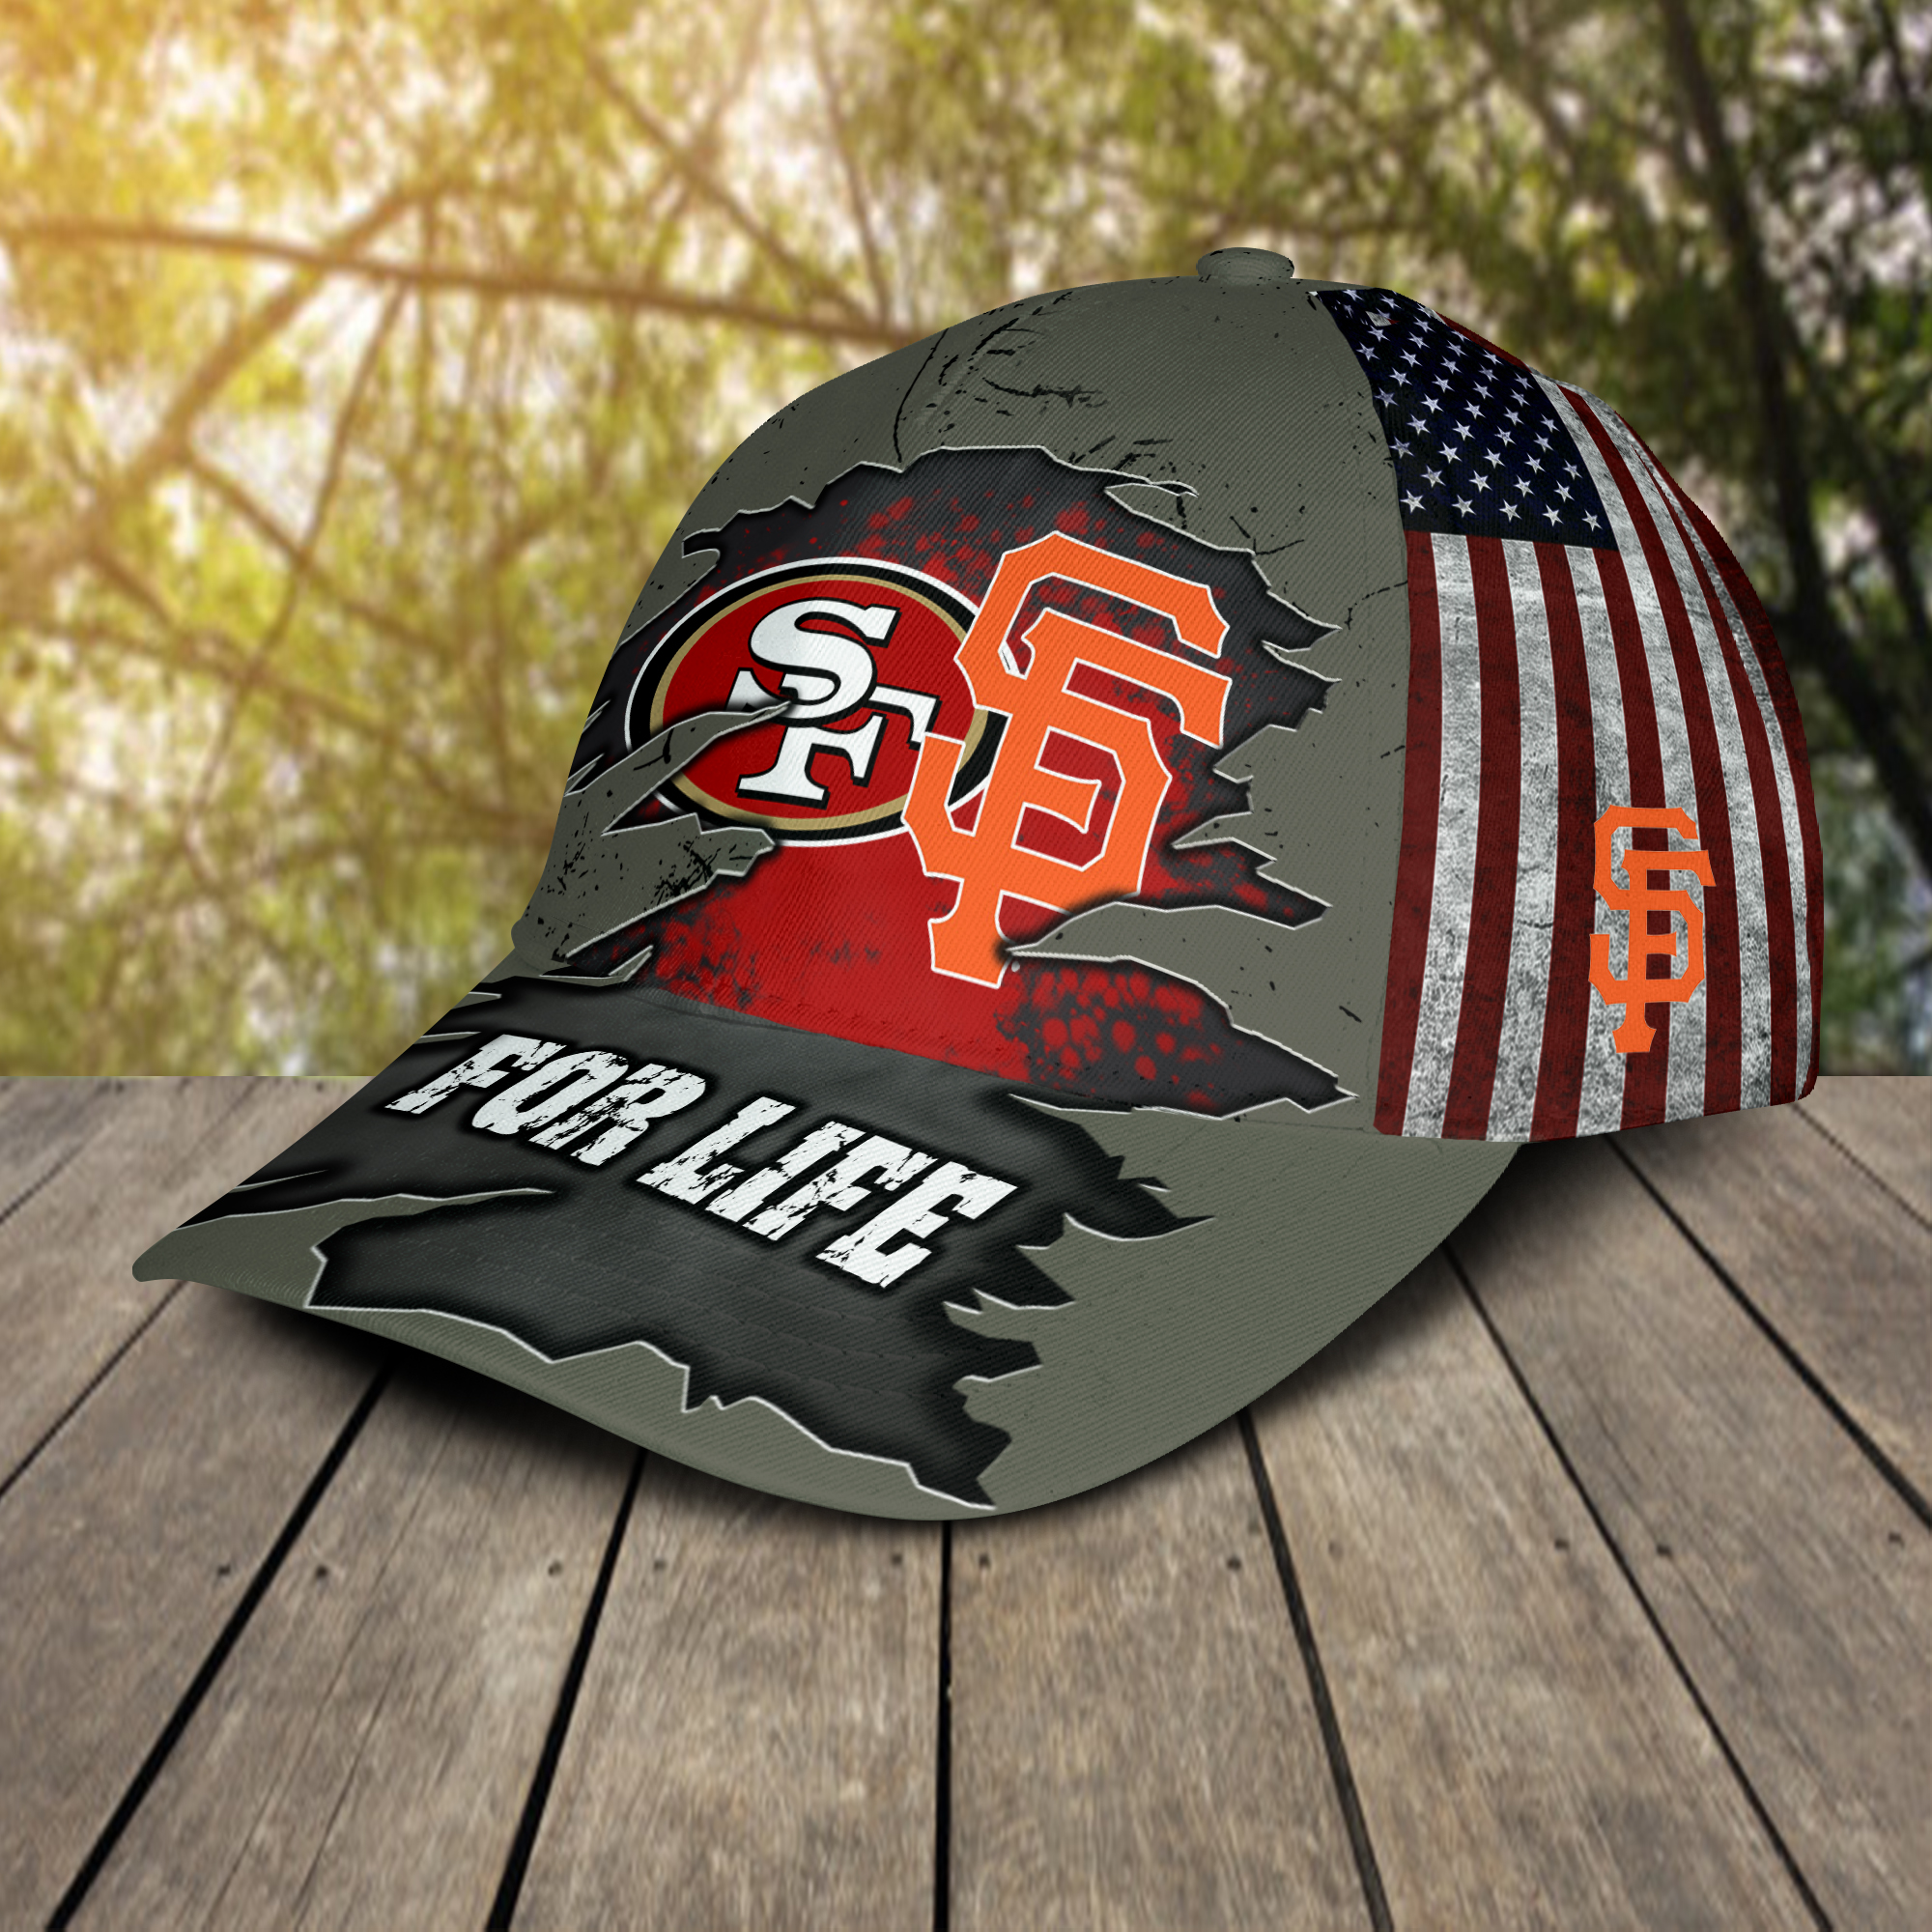 San francisco 49ers and san francisco giants for life cap 2